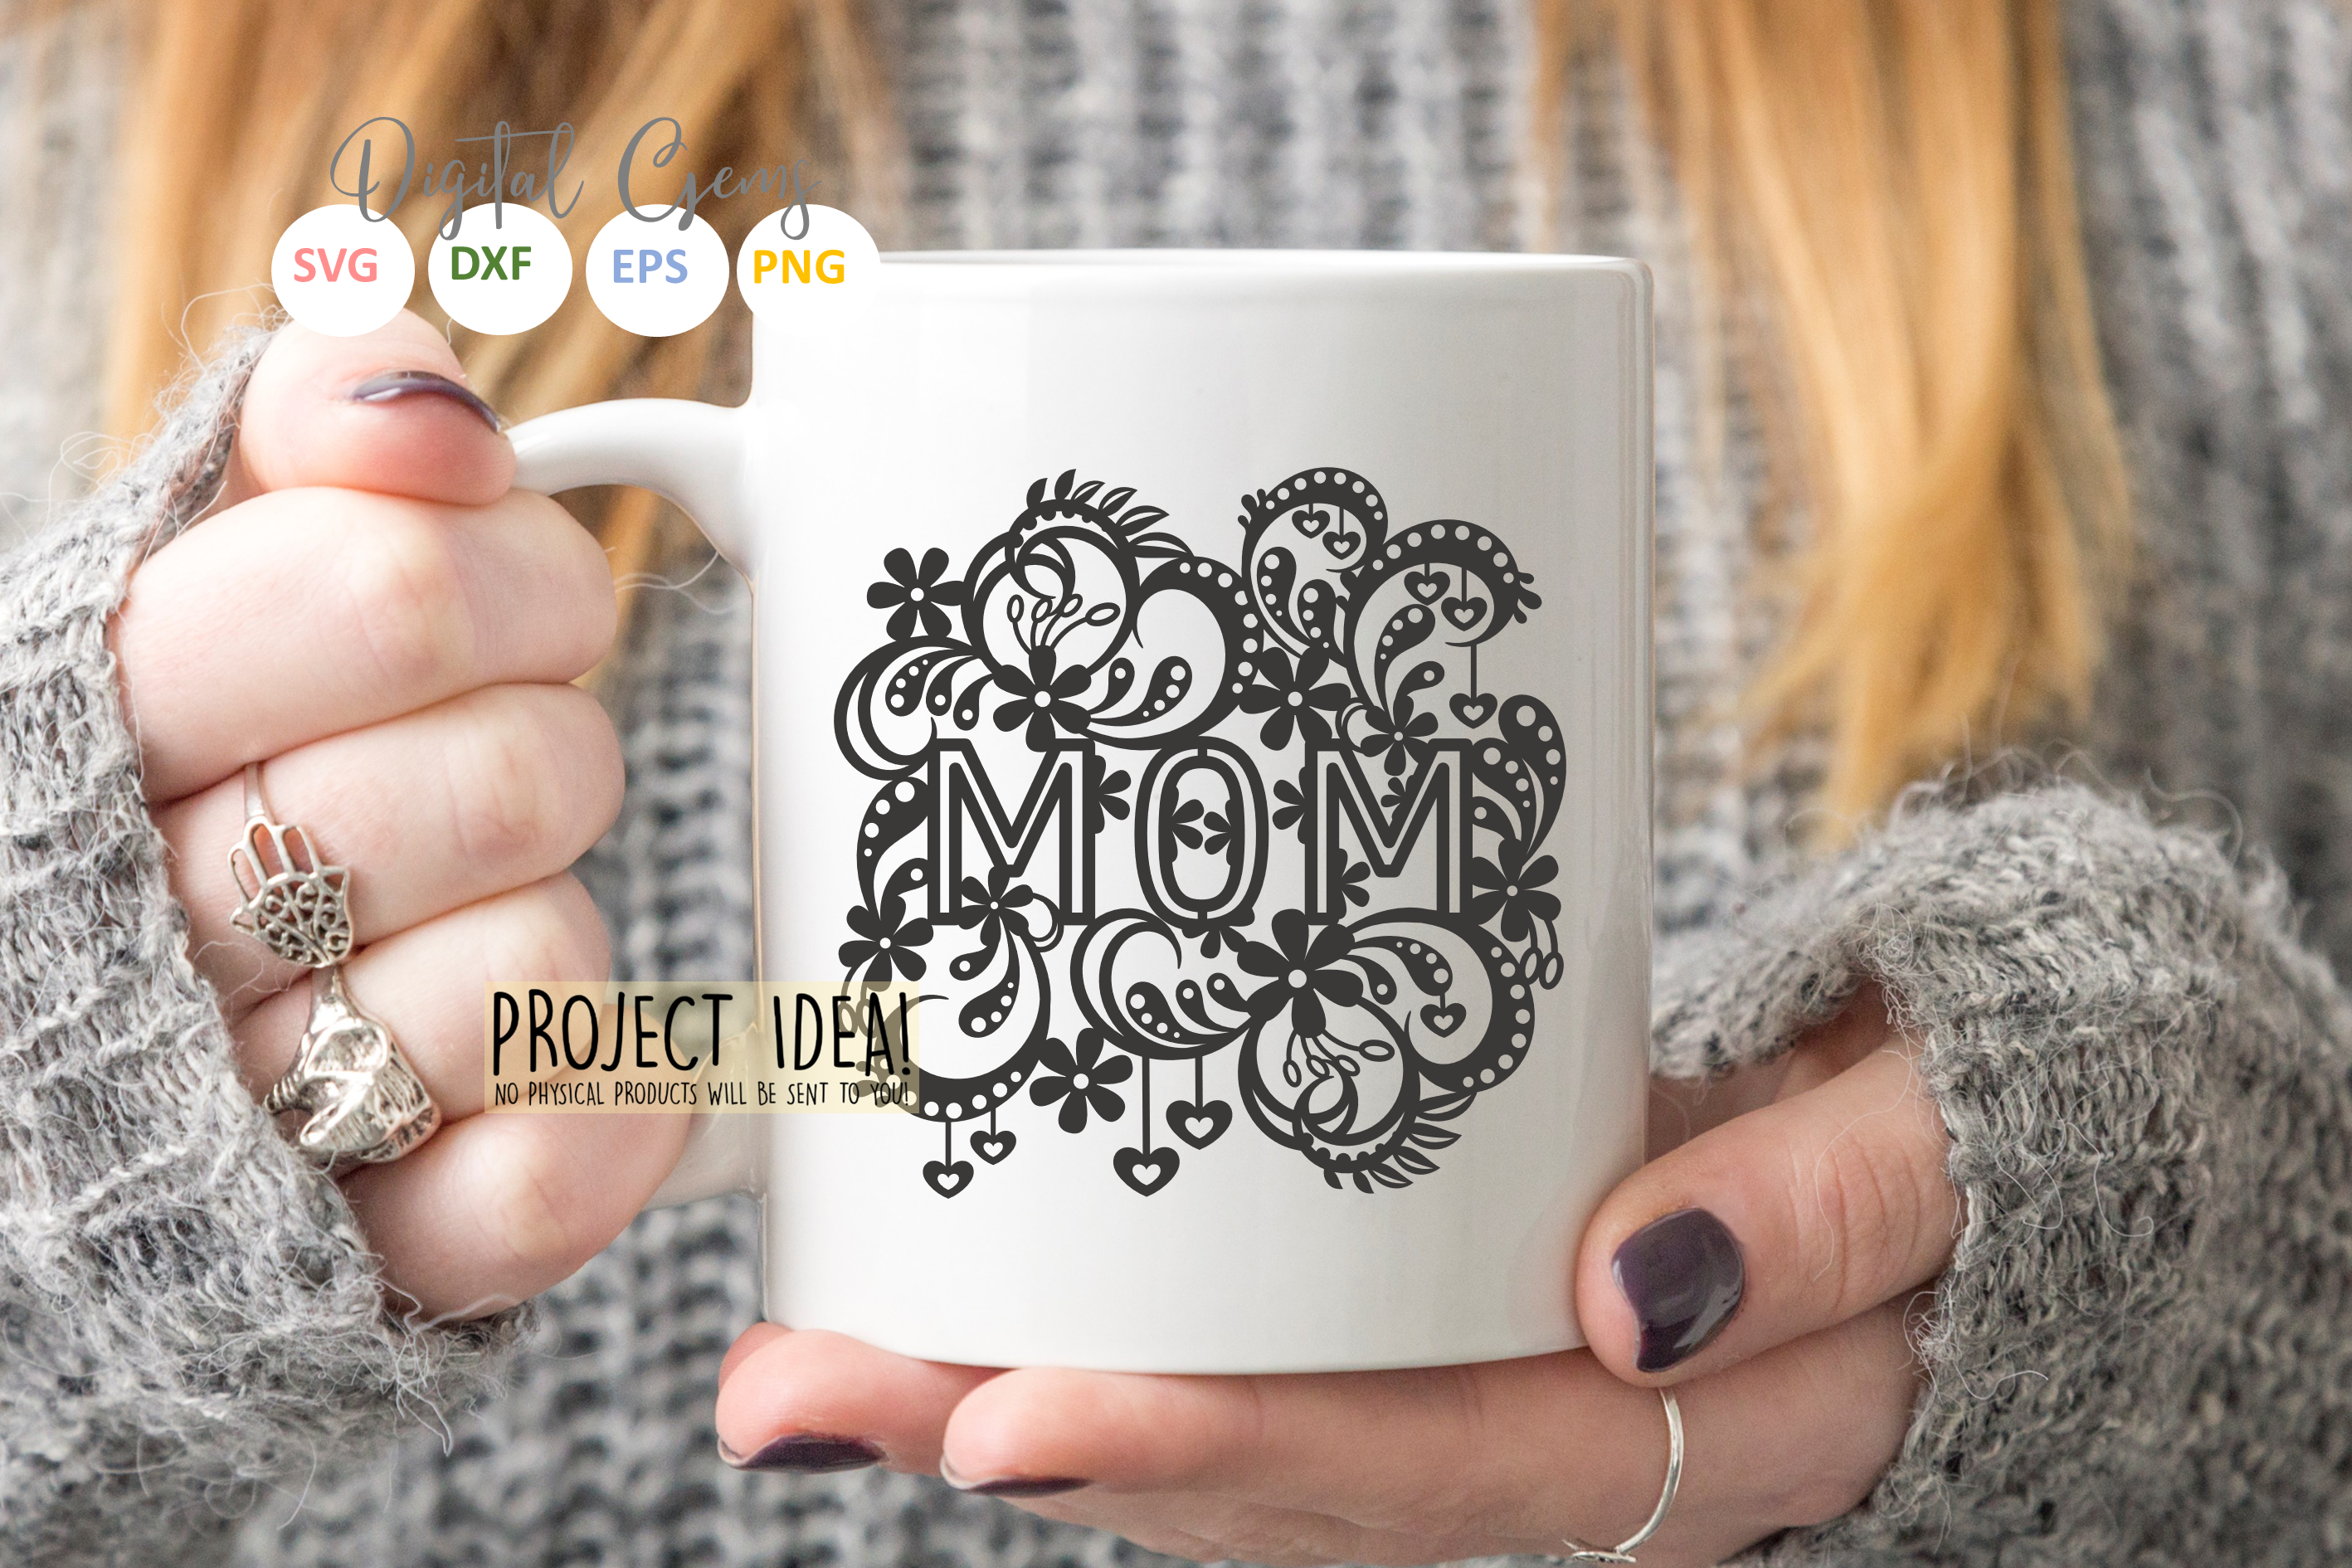 Mom paper cut design SVG / DXF / EPS files example image 3